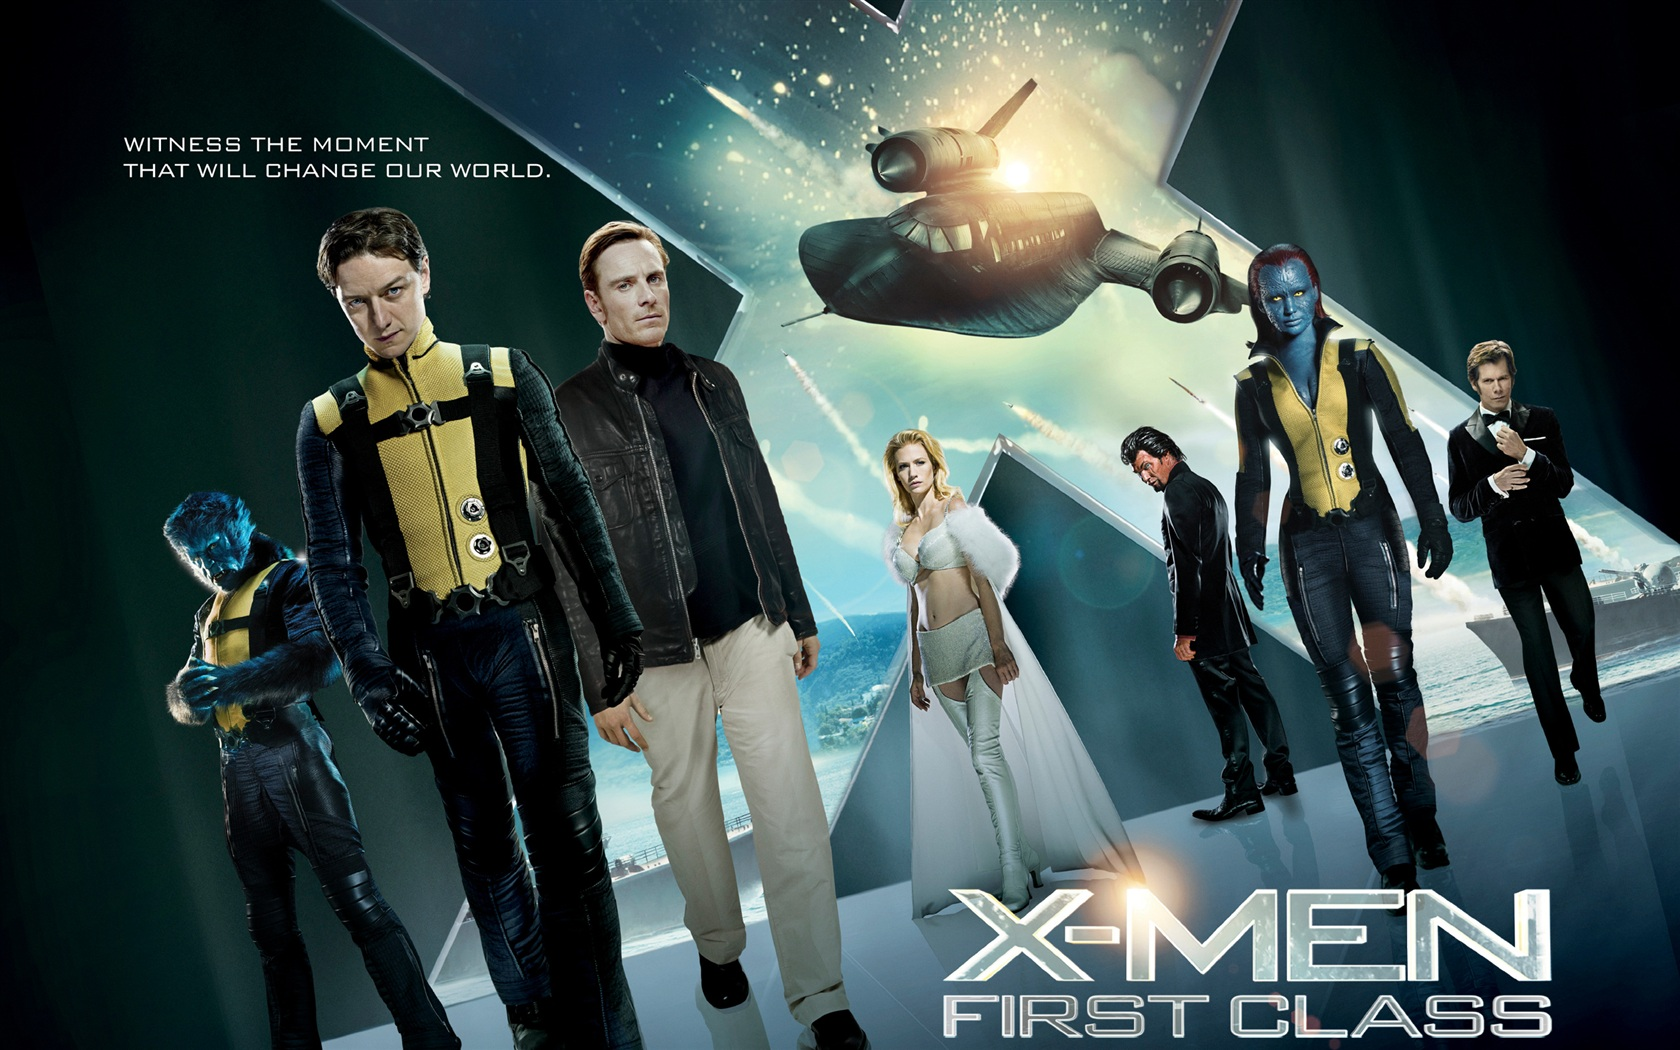 http://fr.best-wallpaper.net/wallpaper/1680x1050/1105/2011-X-Men-First-Class_1680x1050.jpg